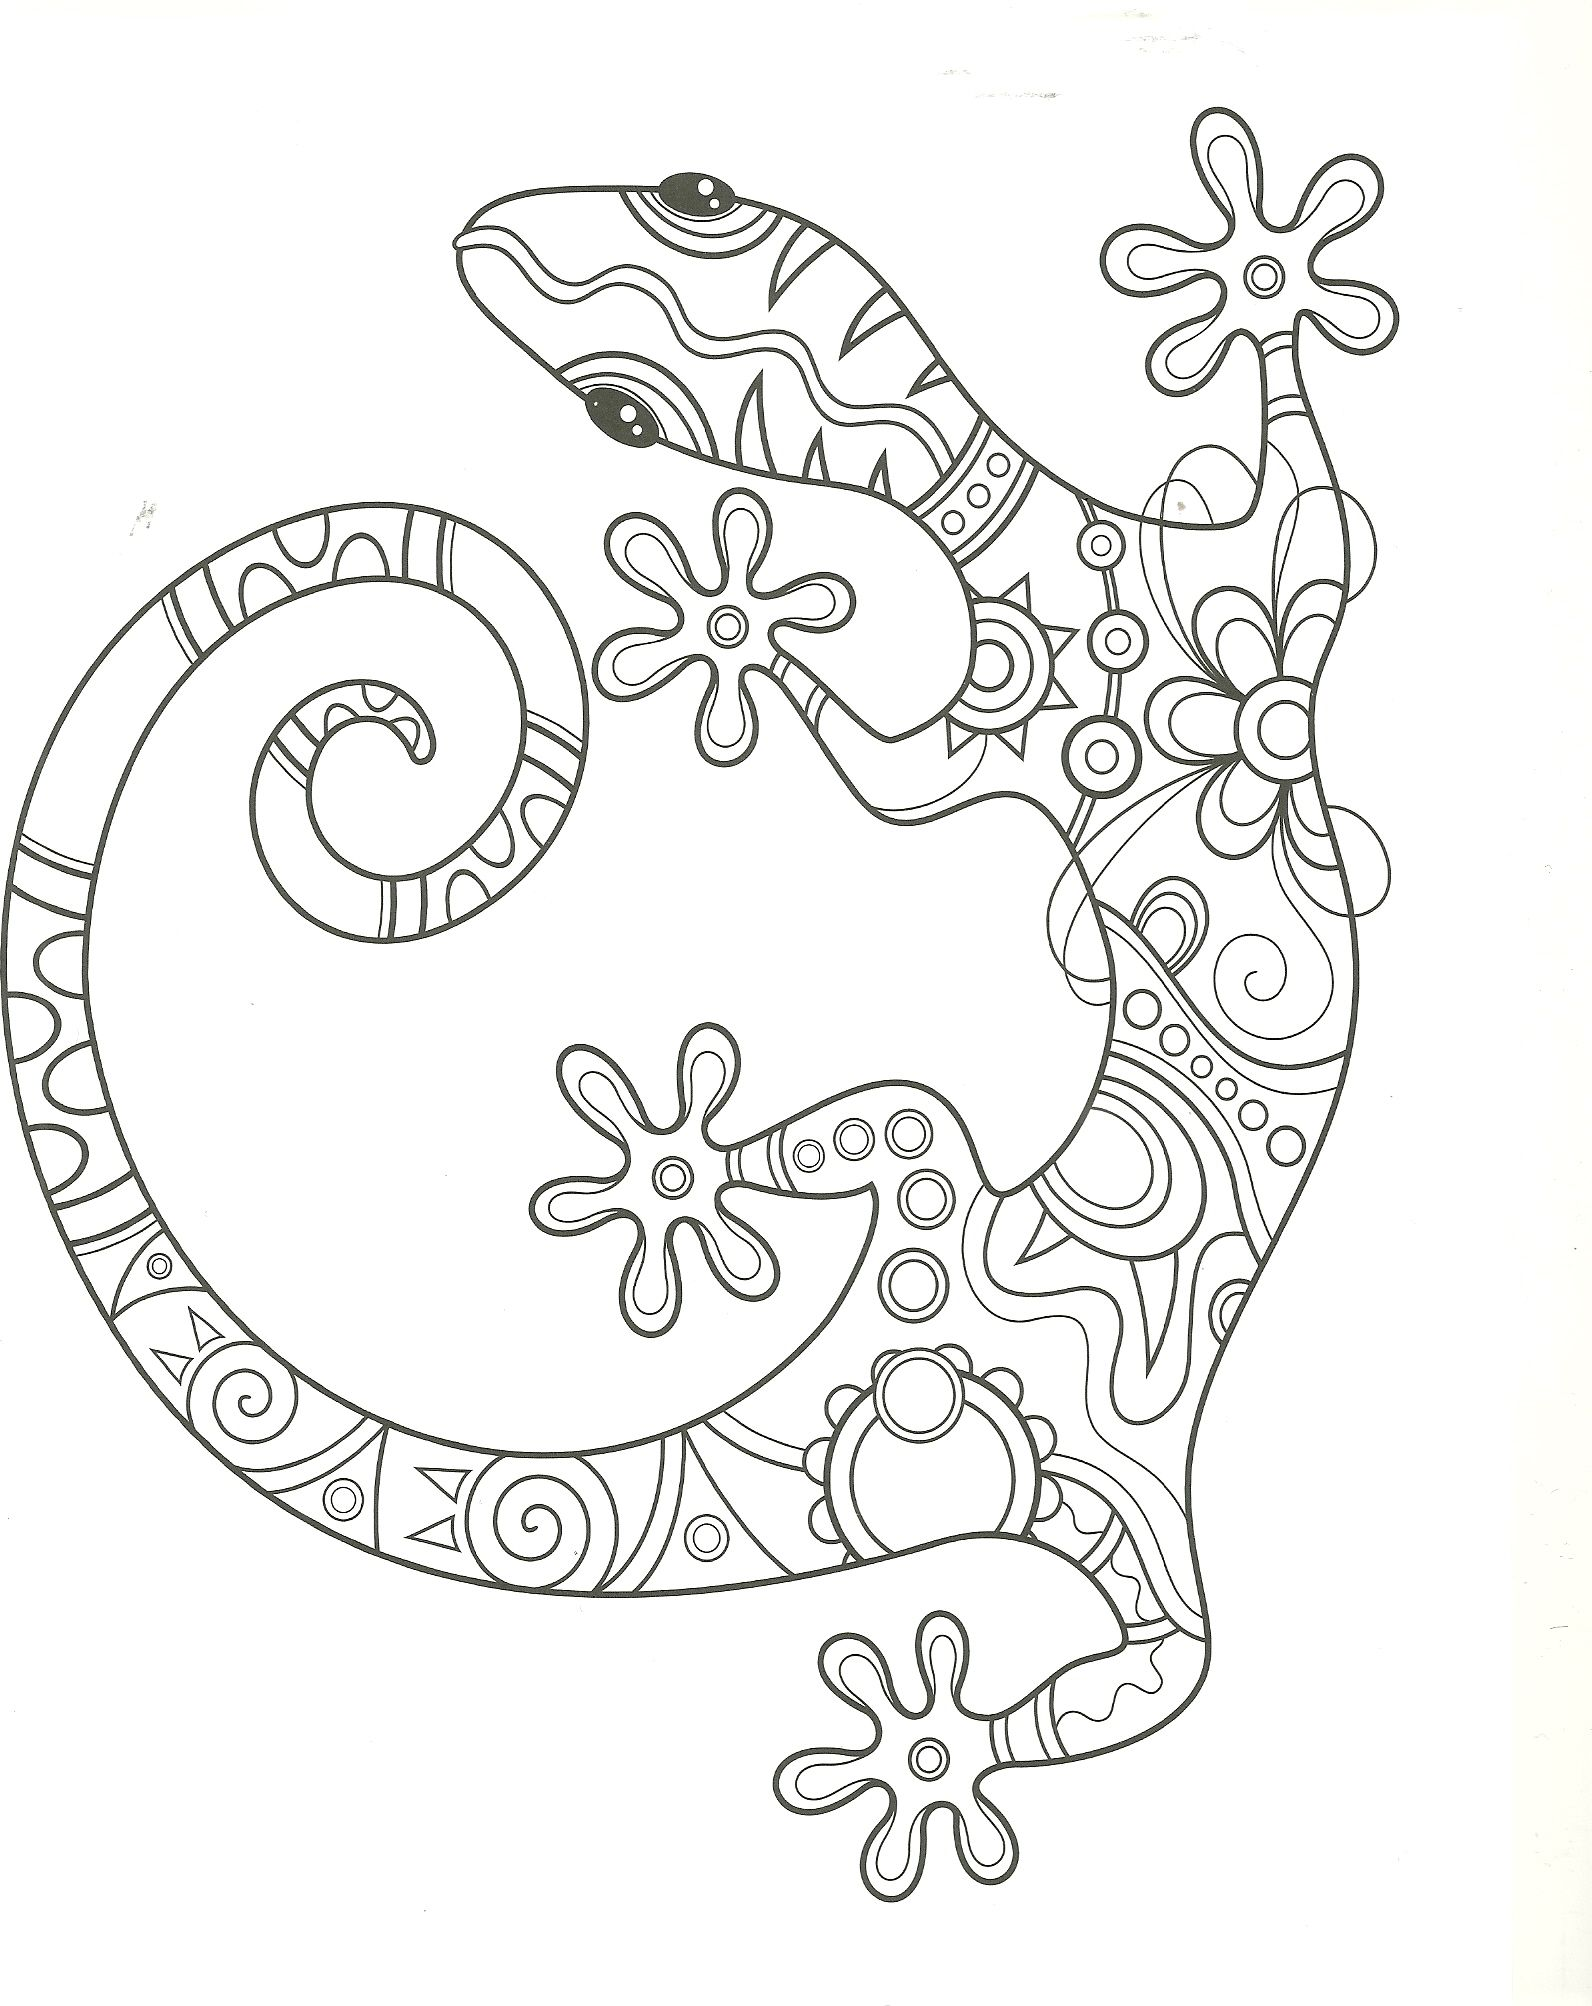 lizard coloring page | my coloring pages | Pinterest | Lizards